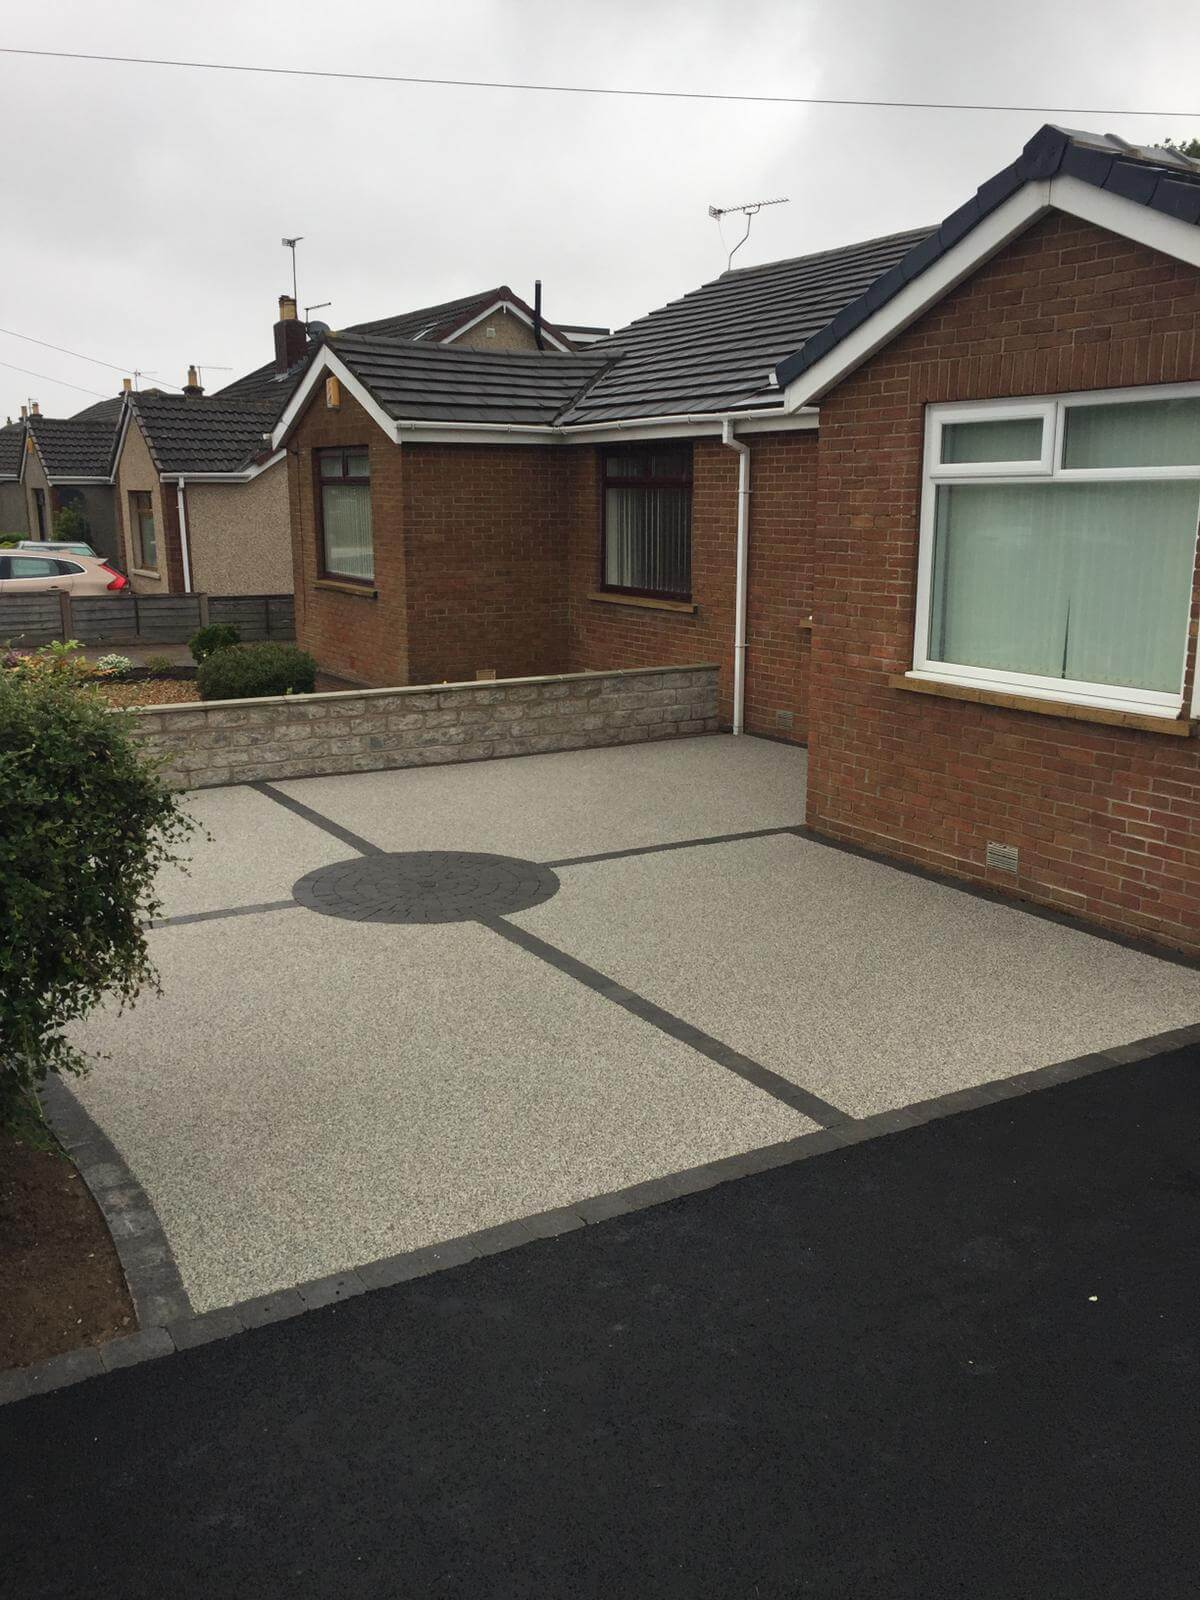 Silver quartz Resin Bound Driveway on house in Lancaster, Lancashire